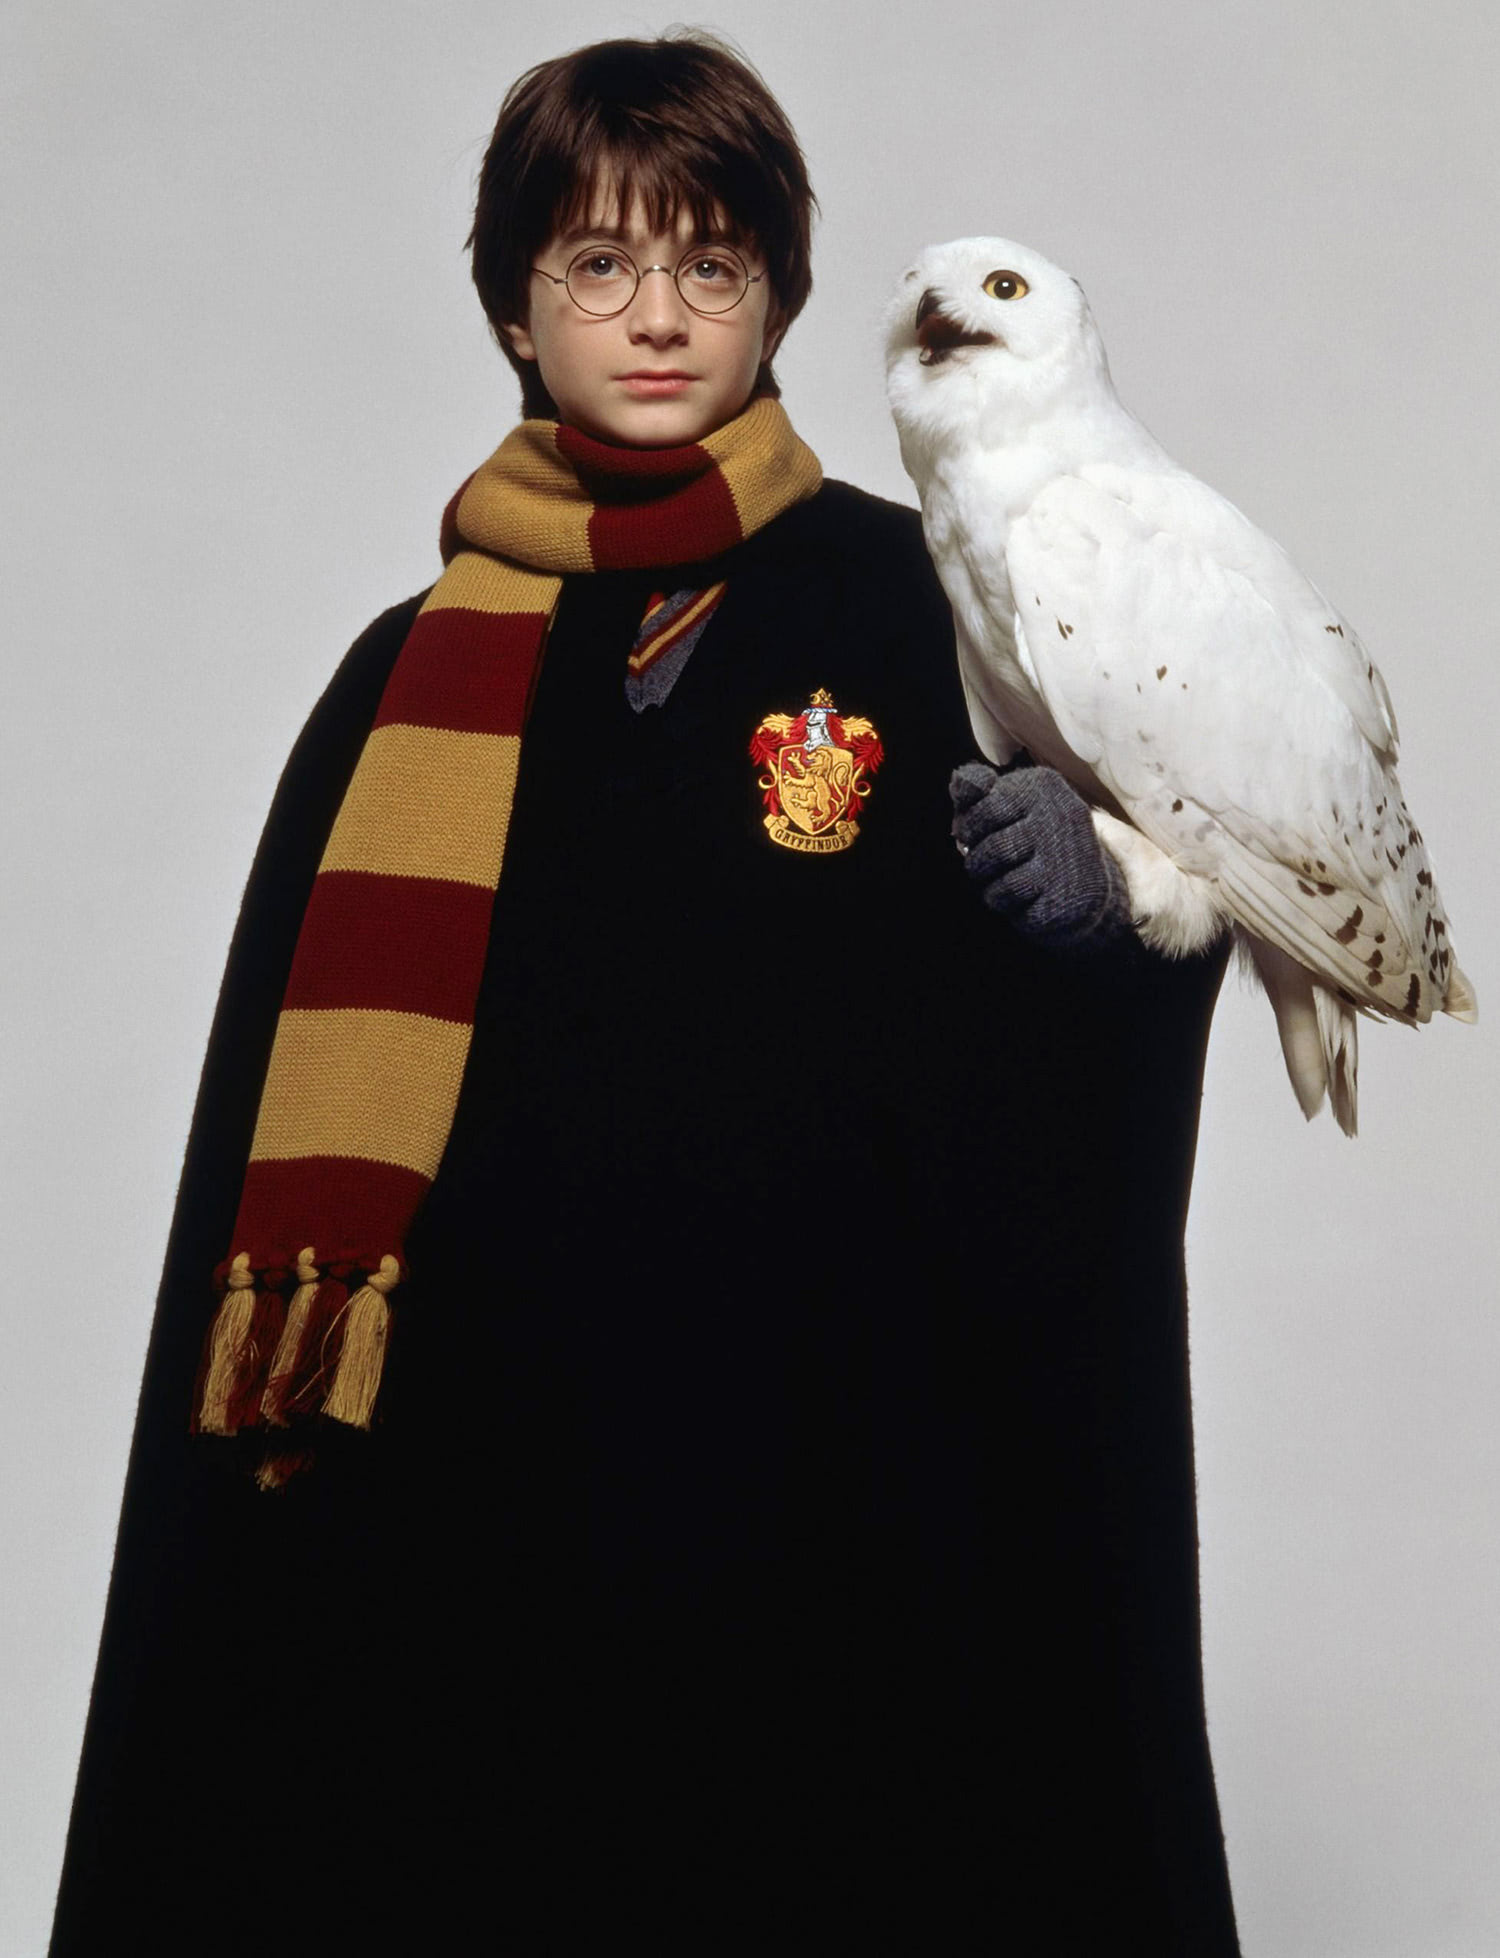 Portrait of Harry Potter with Hedwig